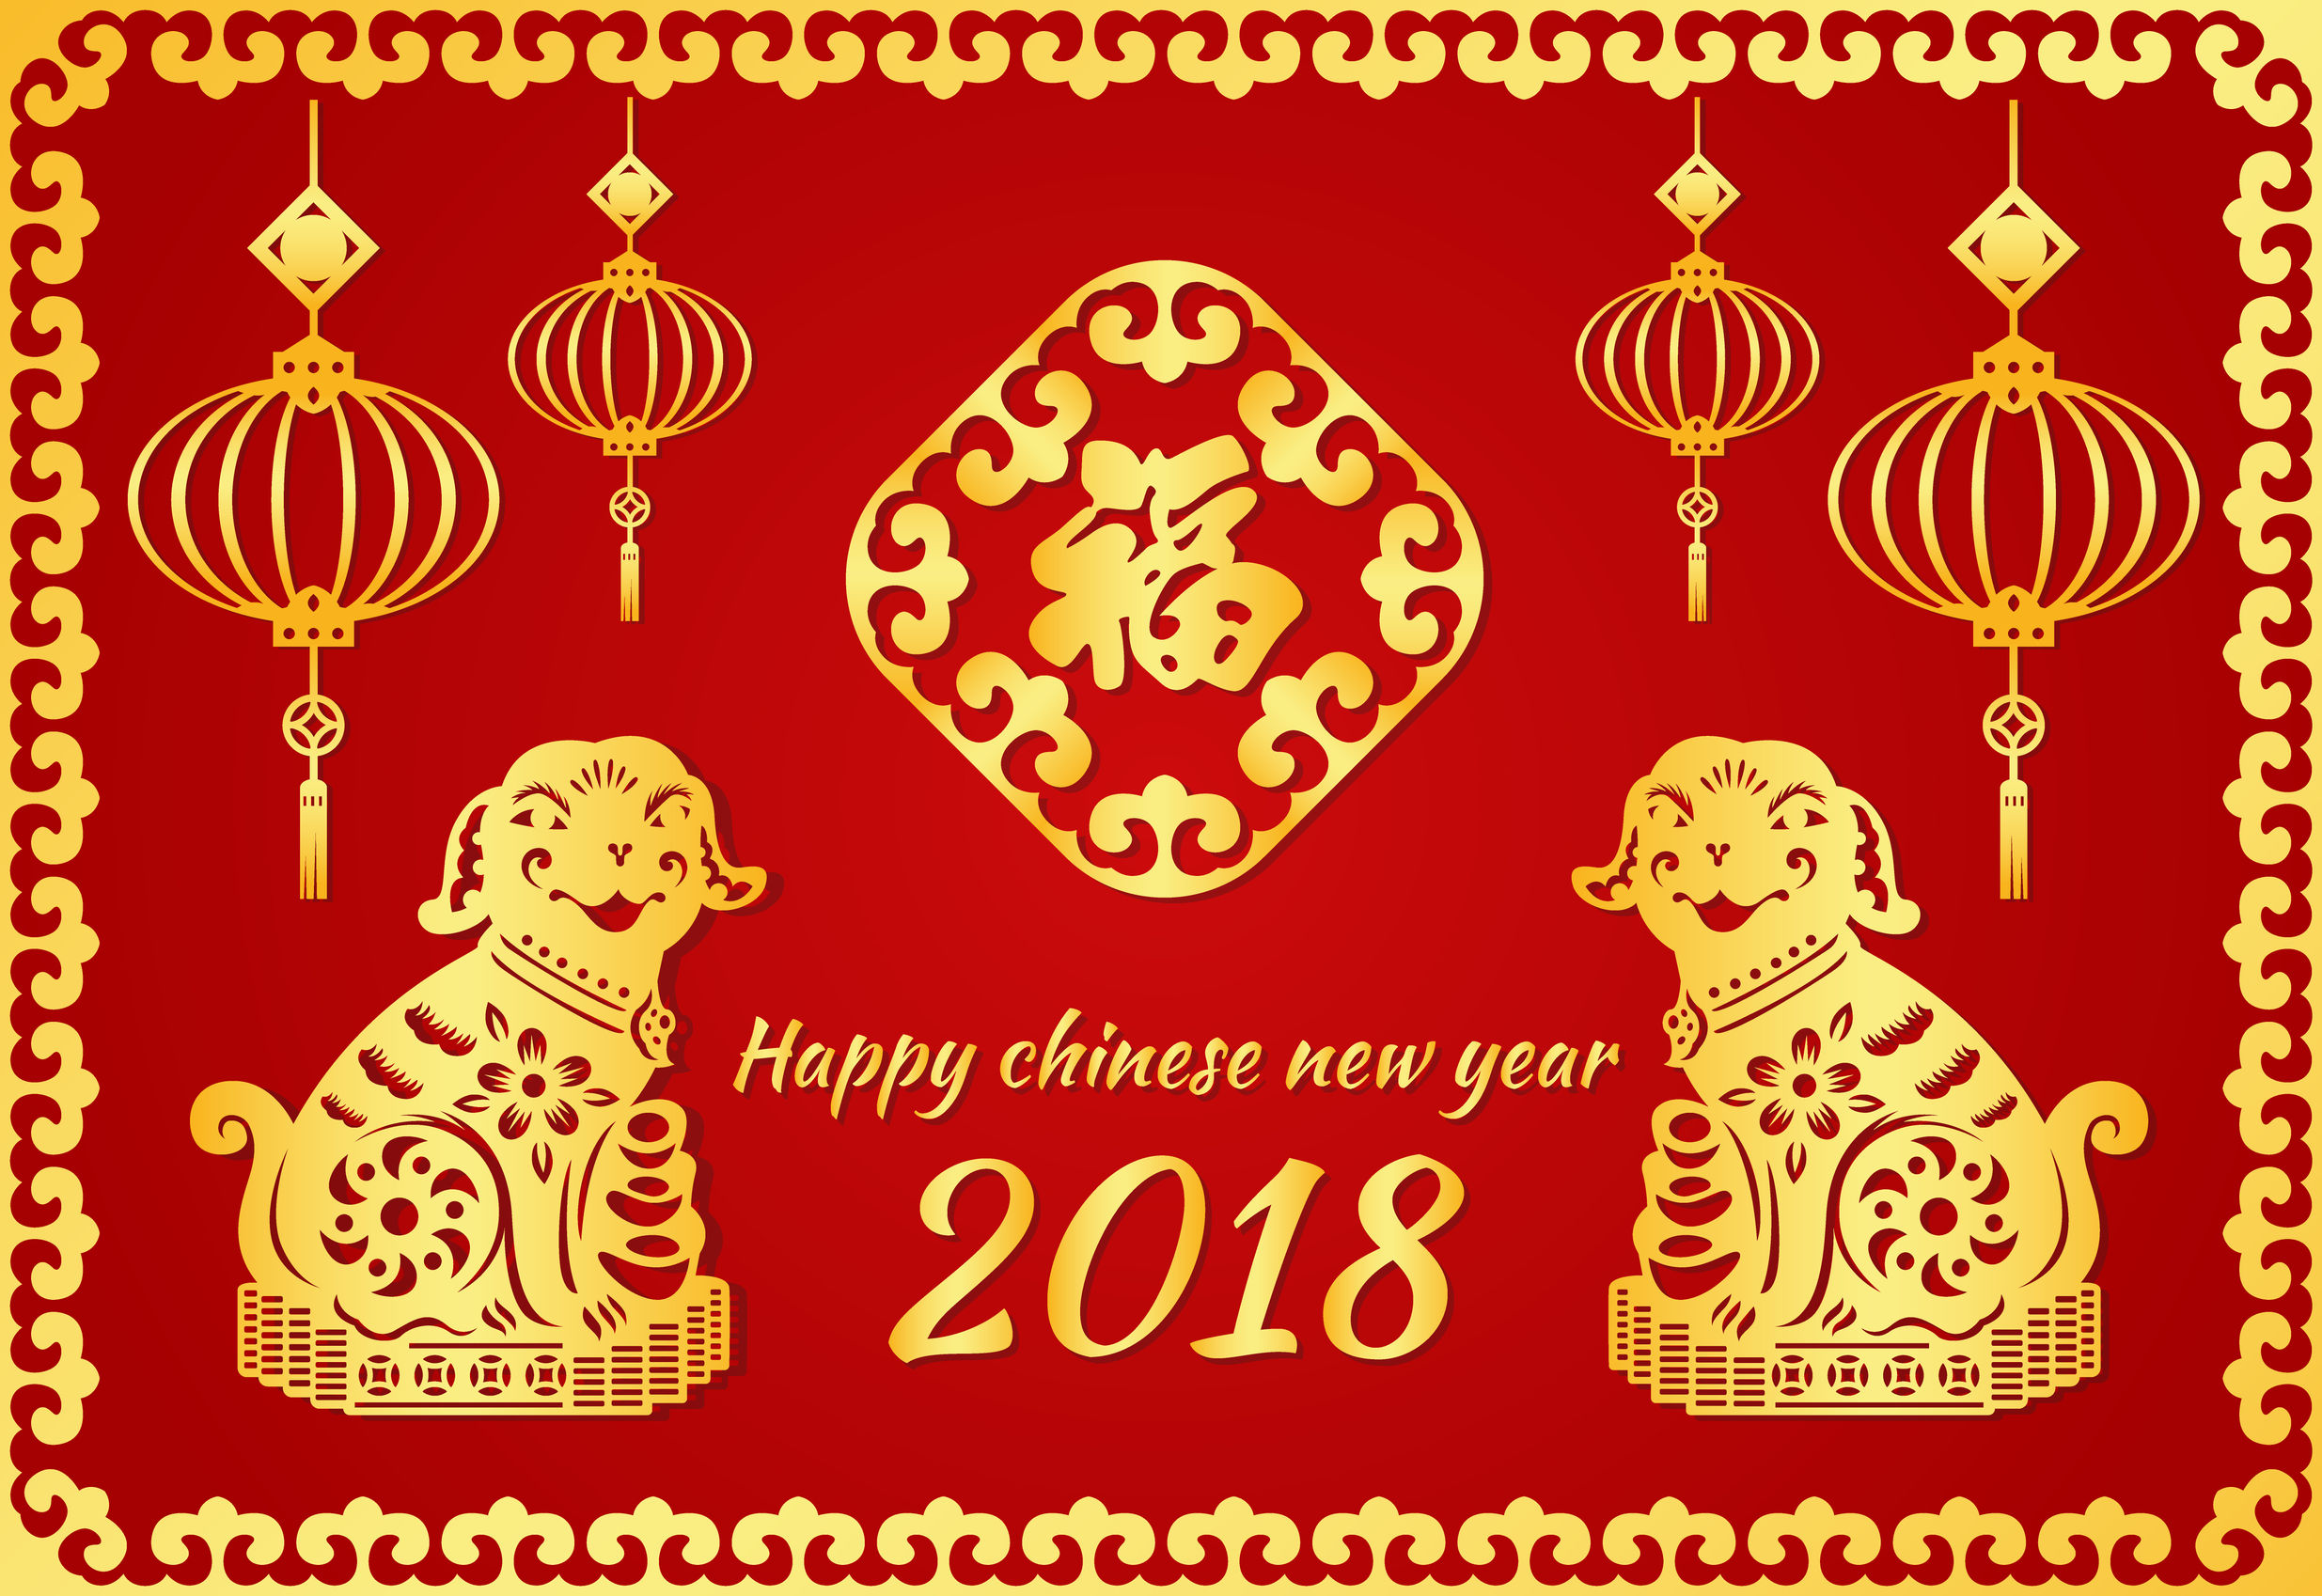 happy chinese new year images download free